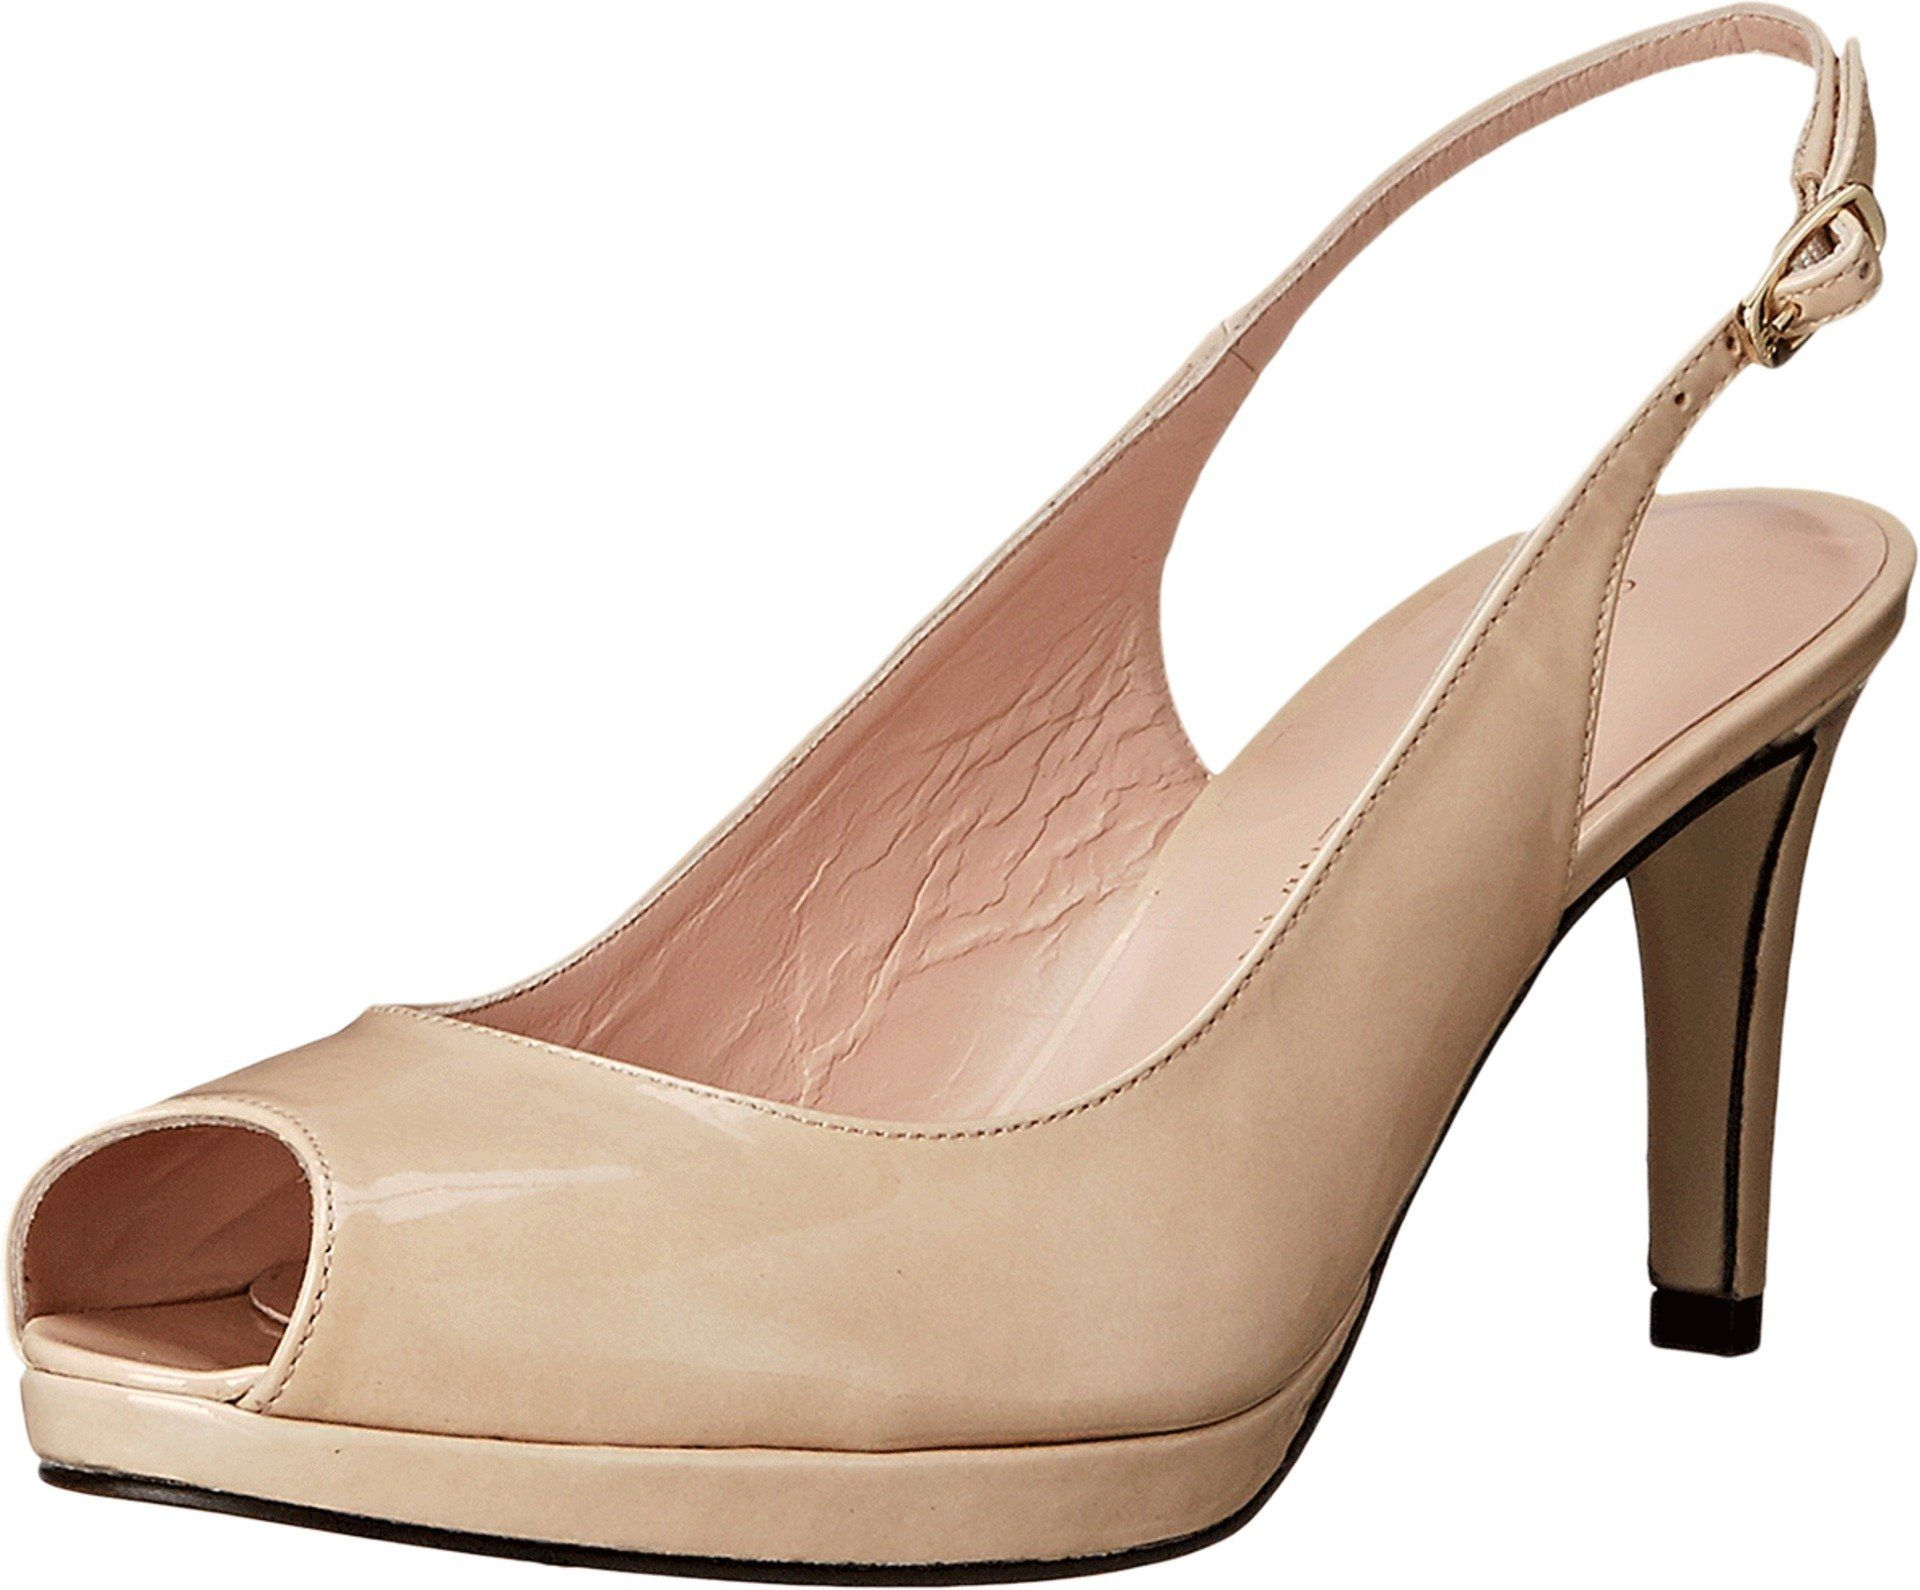 Stuart Weitzman Women's Slinky Naked Aniline Pump 7 W. Made in USA or  Imported.